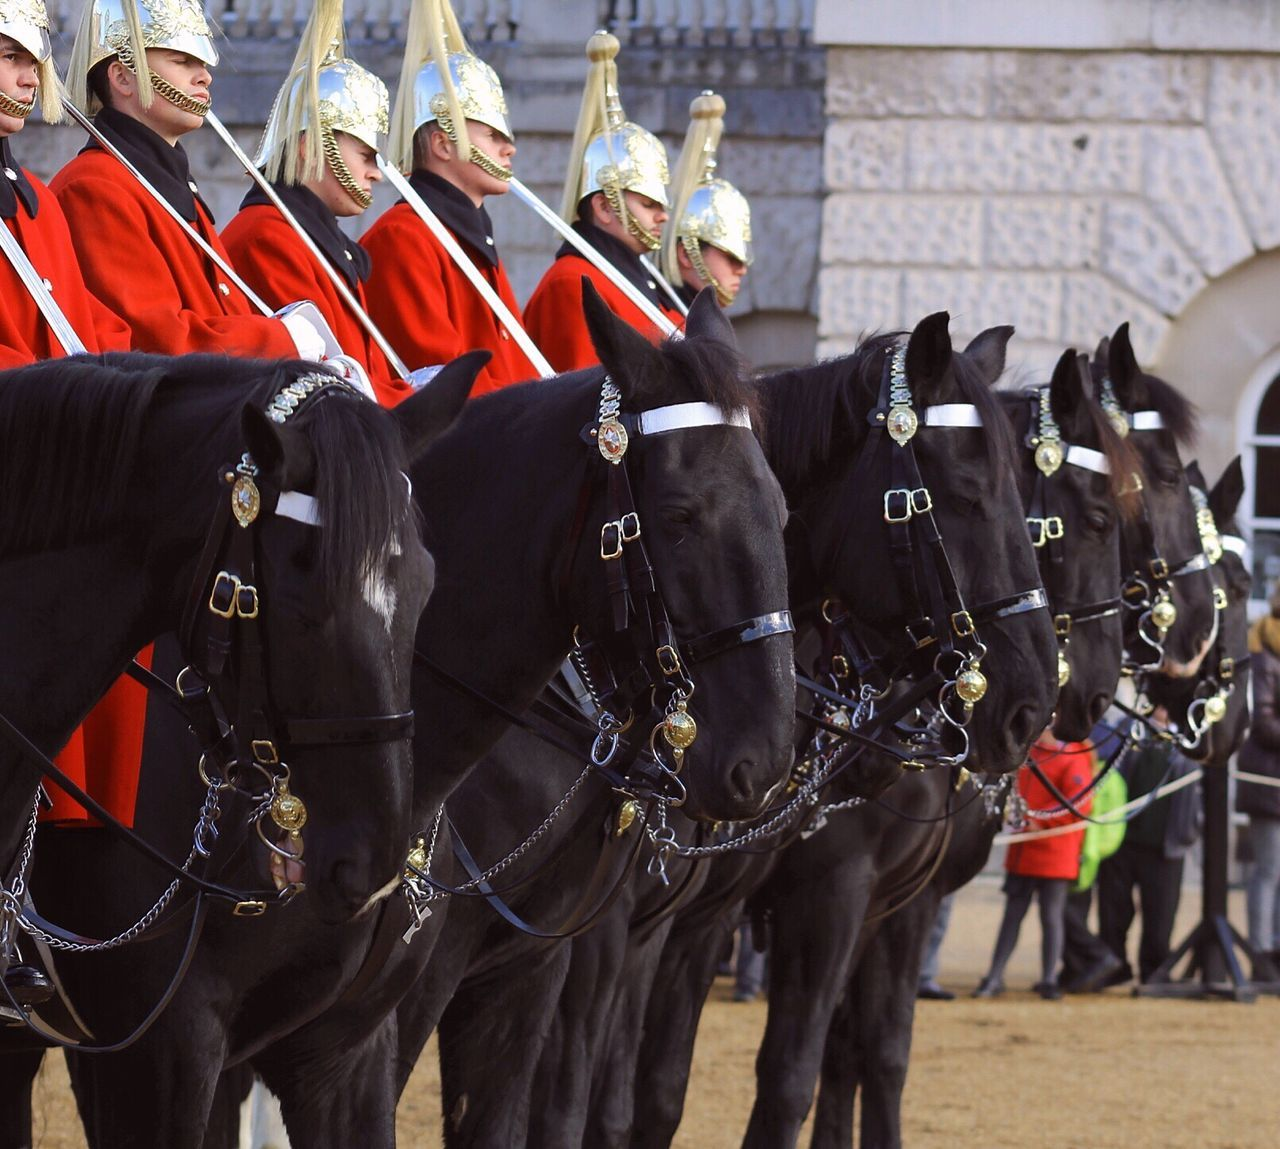 Real People Uniform Guards Ceremonial Cavalry Duty Honour Soldier History Culture